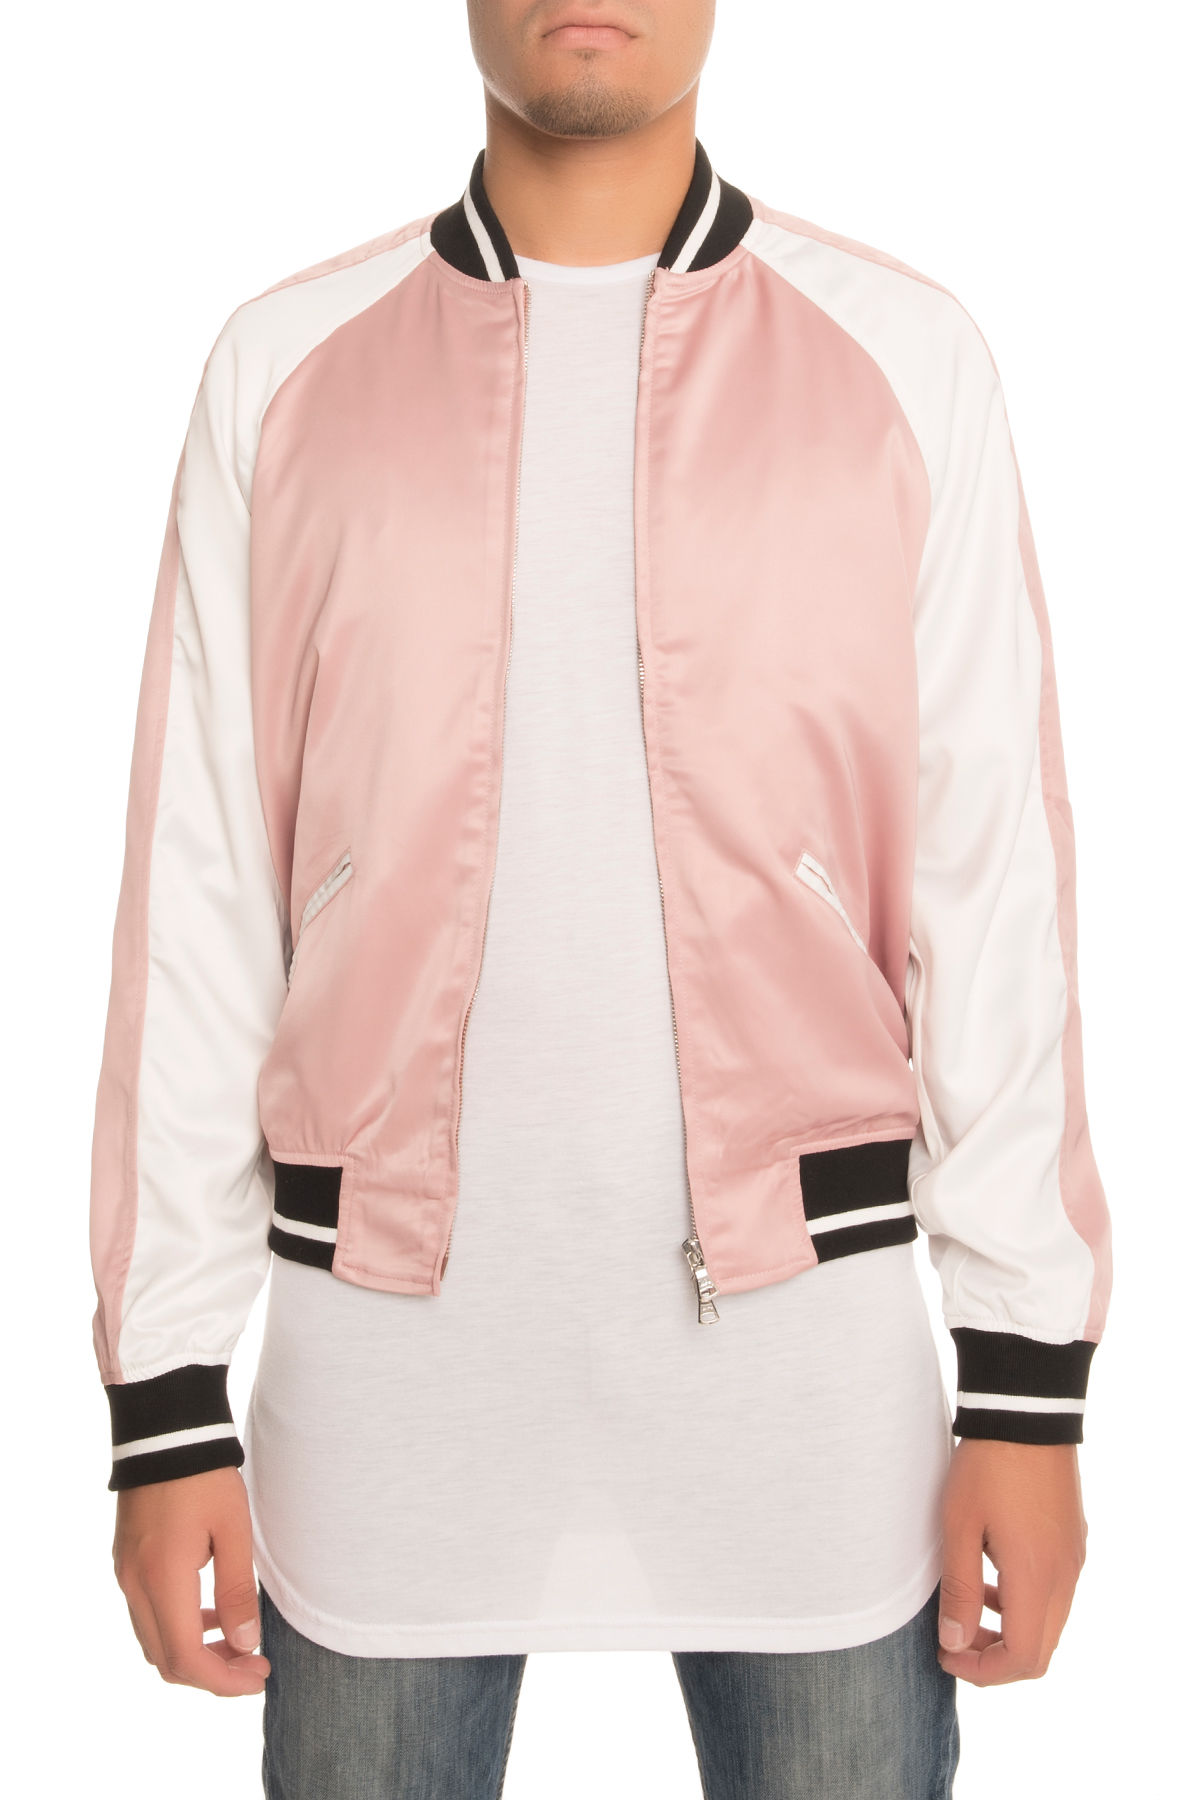 Image of The Strickland Souvenir Jacket in Pink